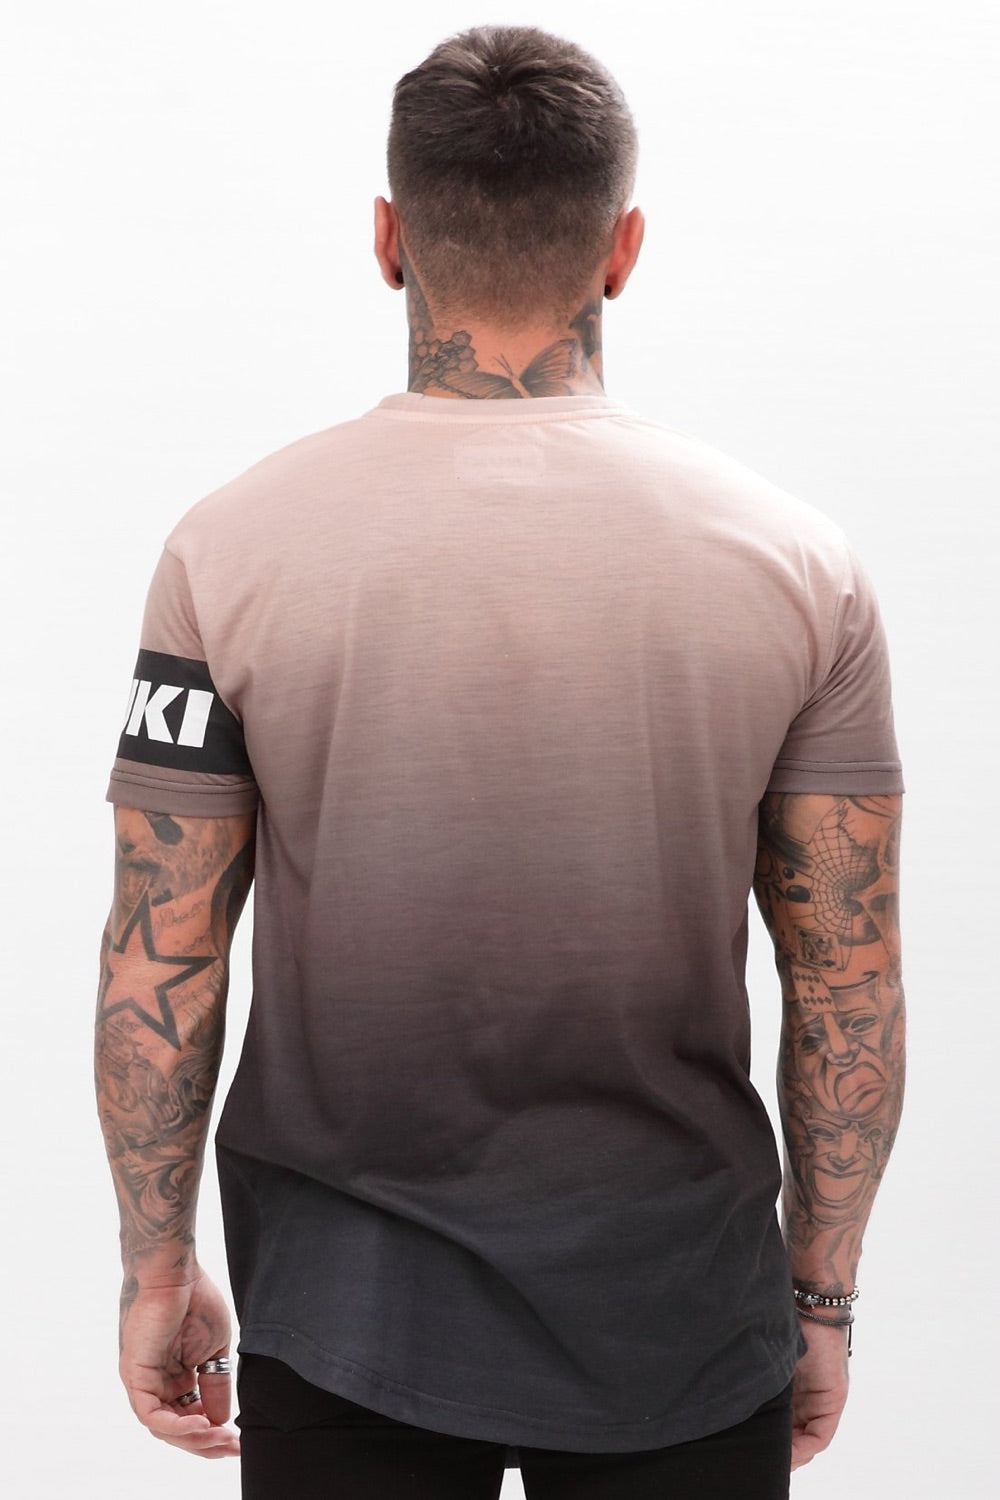 Enuki London Sapporo Dip Dye T-Shirt  - Hazelnut/Black - 2